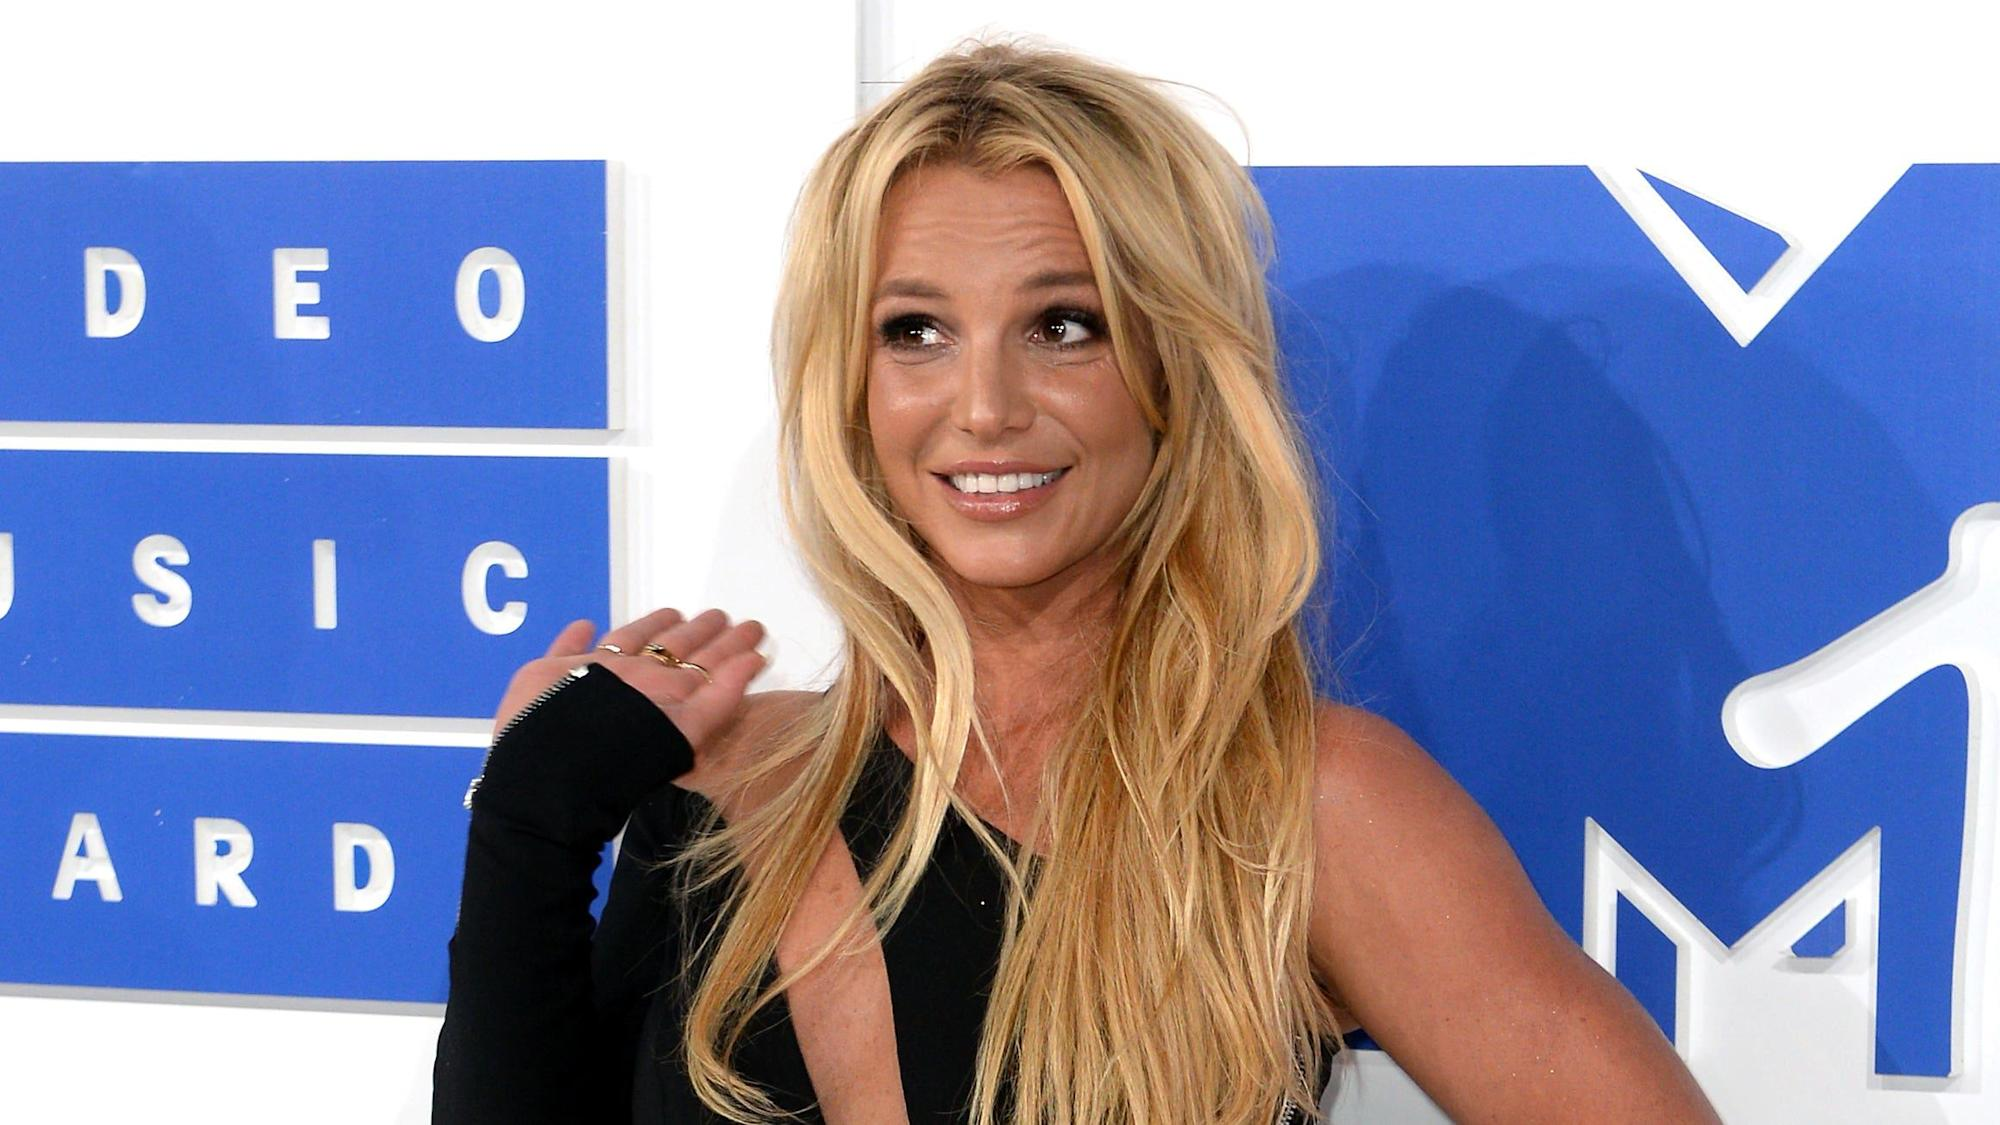 'It was nothing' – Britney Spears shares vaccination experience